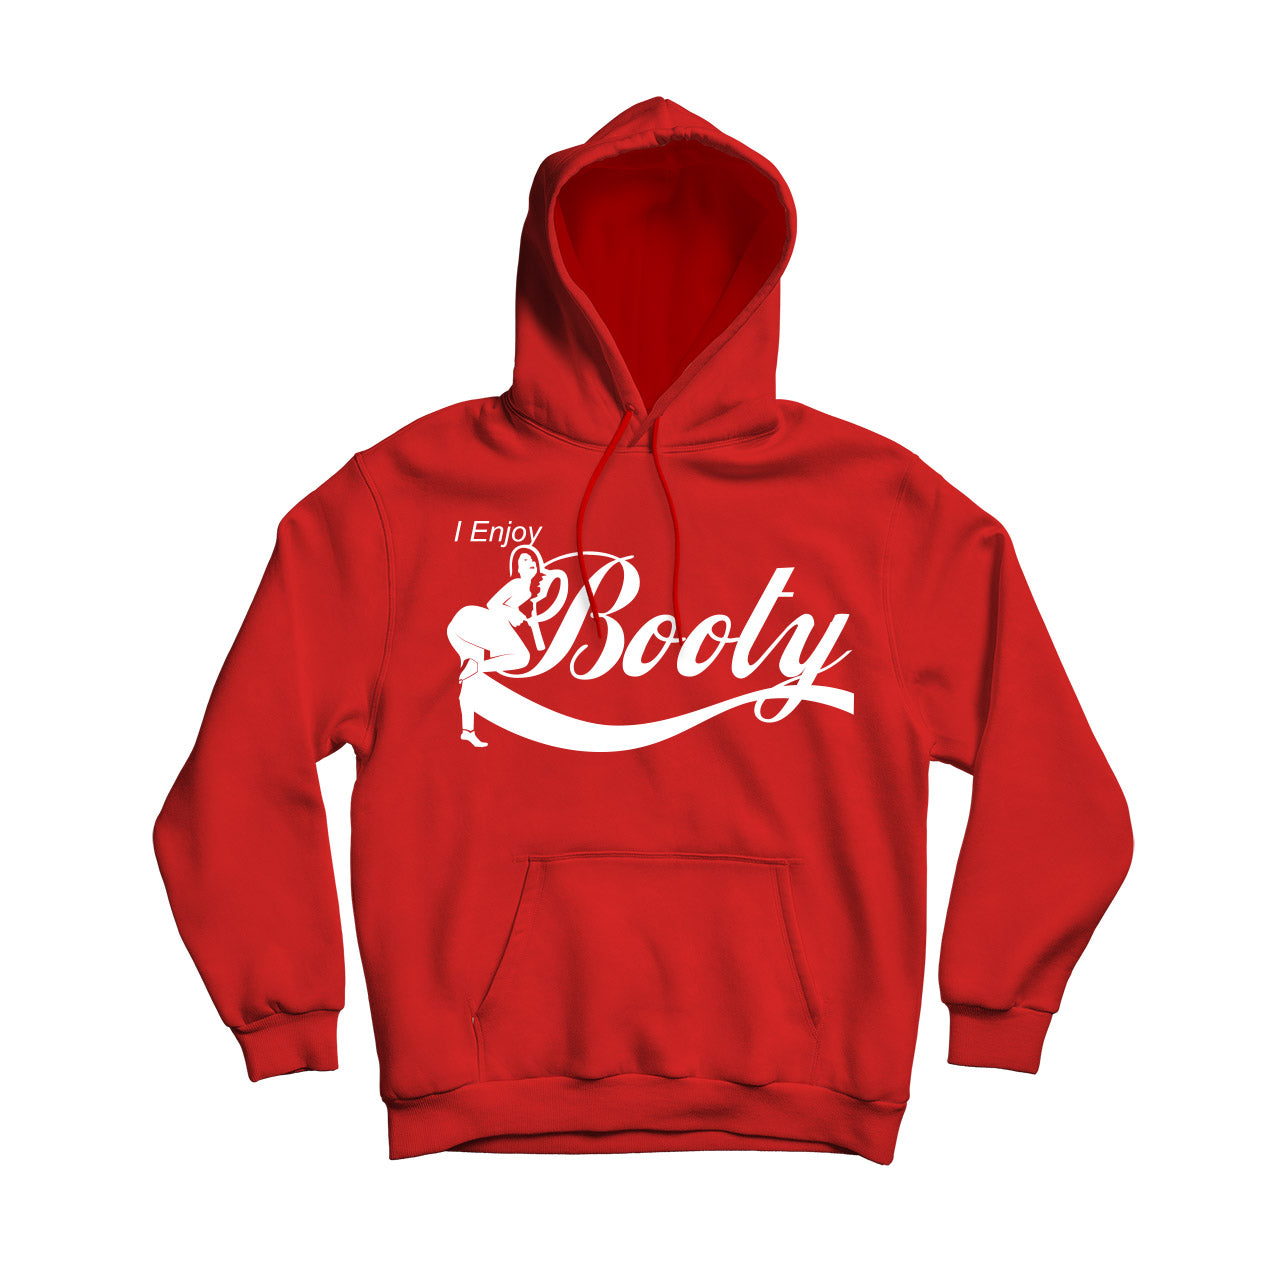 Enjoy Booty Comfortable Warm Pullover Hoodie